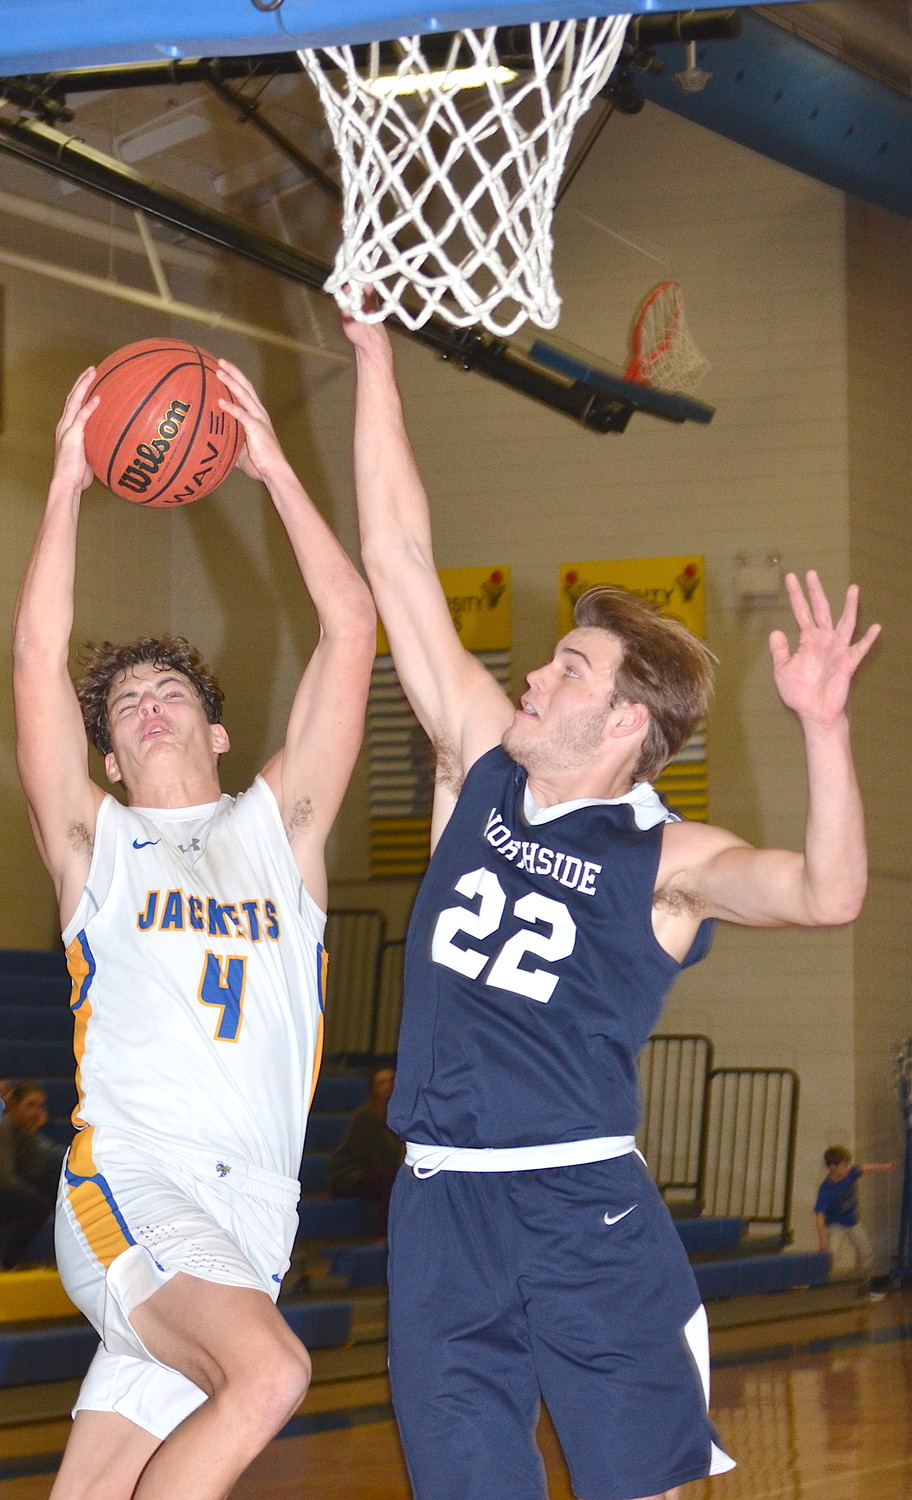 Curry's Colt Aaron (4) goes up for a shot as Northside's James Lake (22) defends. The Yellow Jackets won their sixth straight game, beating the Rams 52-44 on Tuesday night.